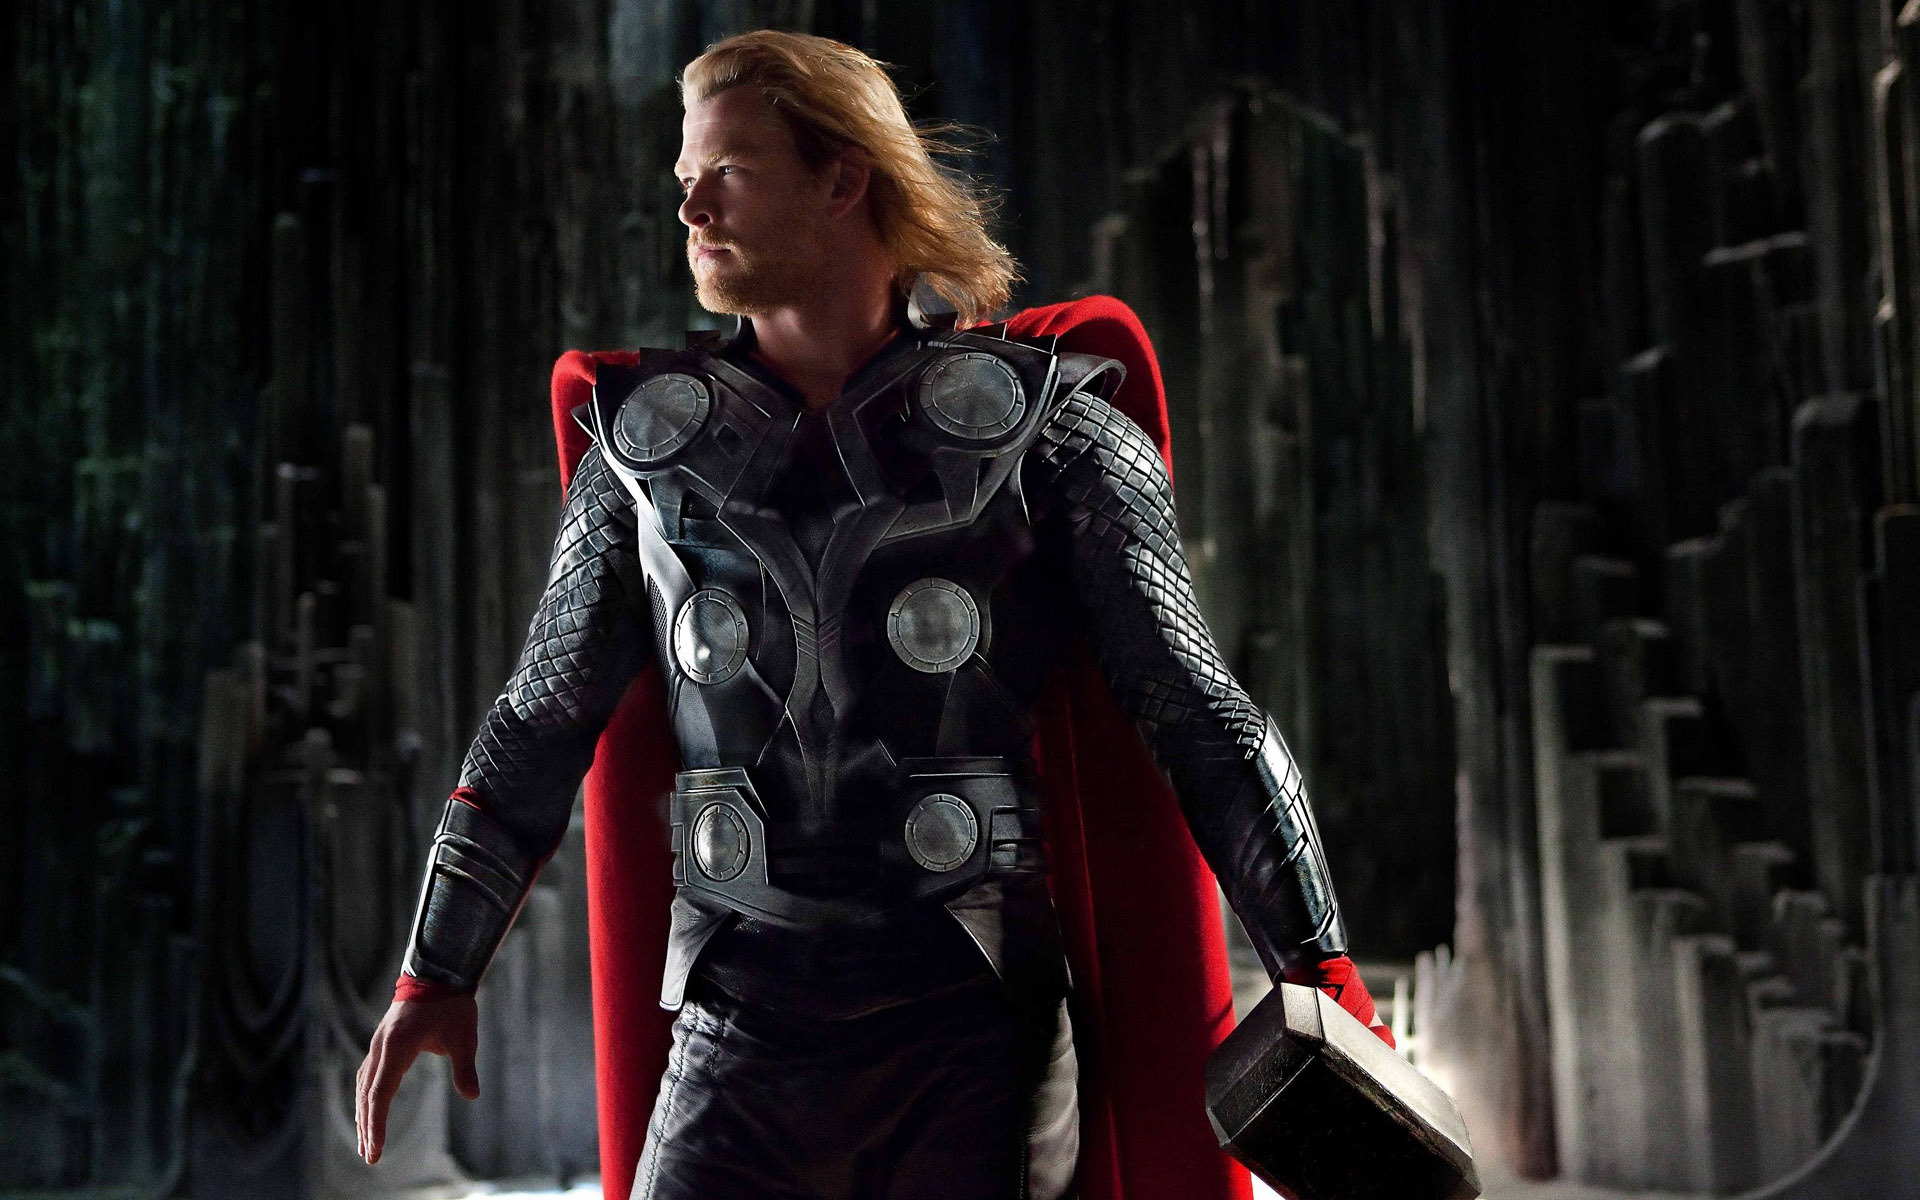 Thor hd wallpapers for desktop download - Thor wallpaper ...